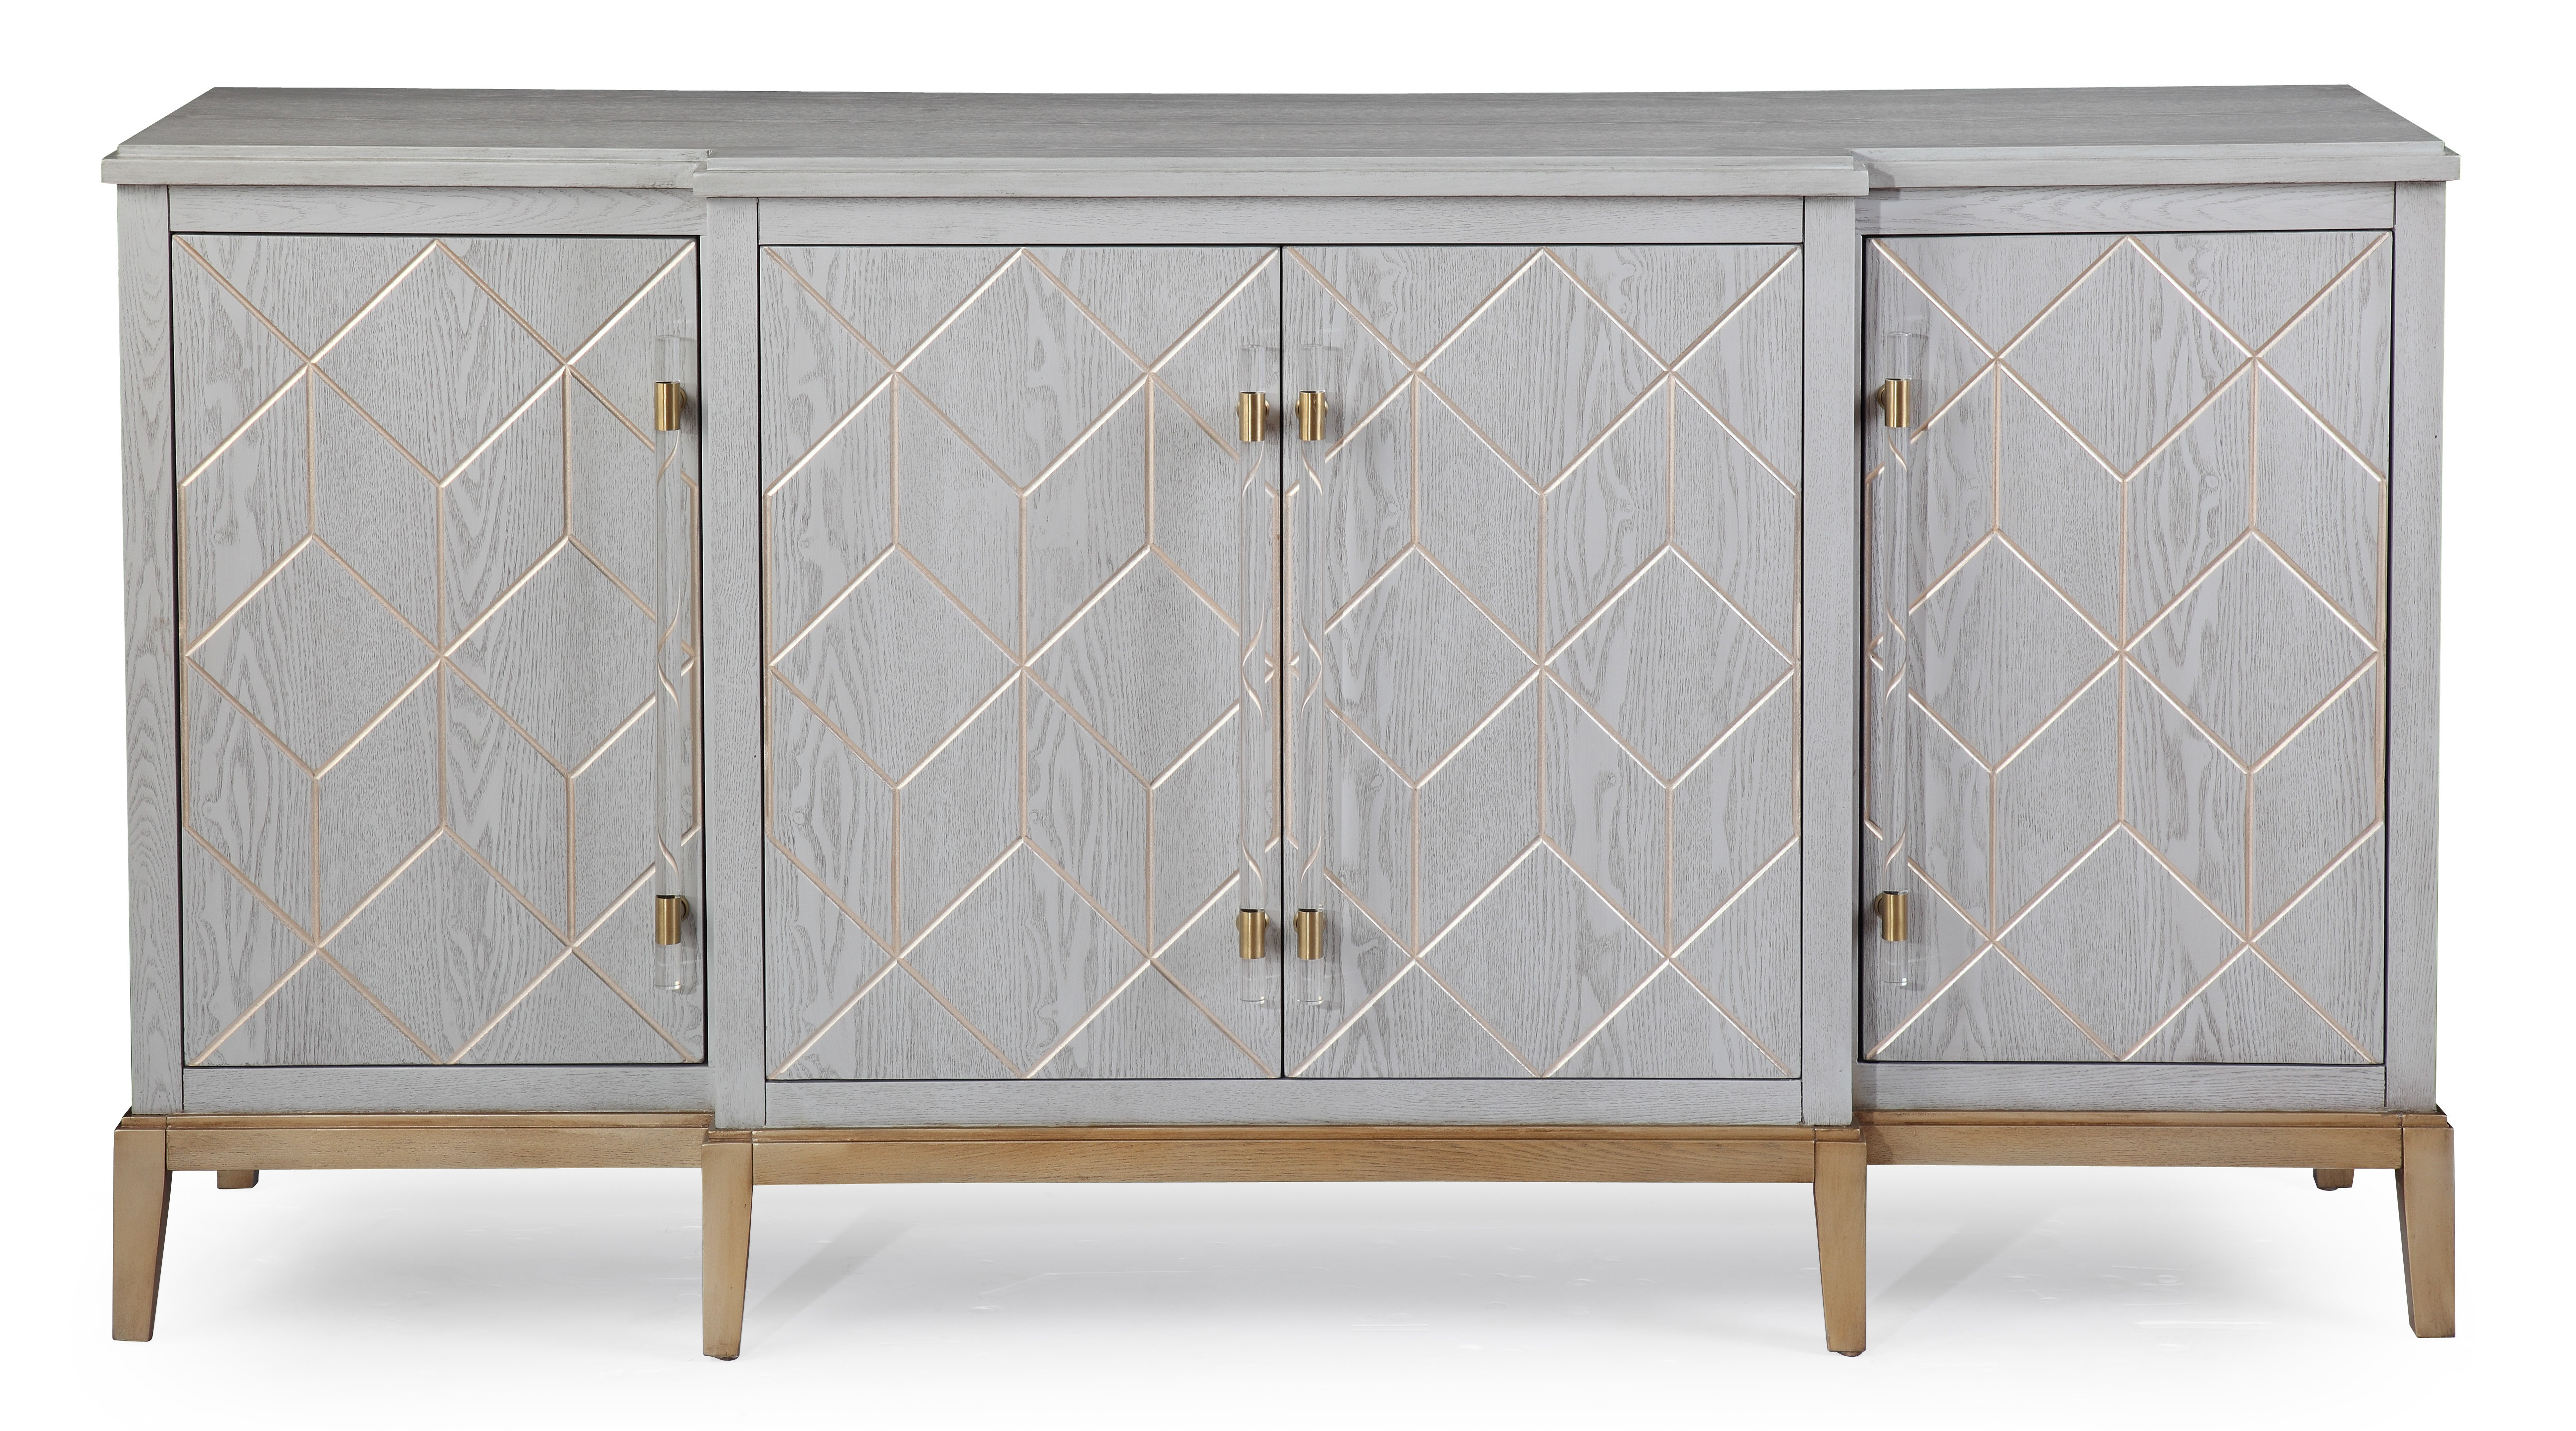 Farmhouse & Rustic Gray Wood Sideboards & Buffets | Birch Lane in Candide Wood Credenzas (Image 13 of 30)